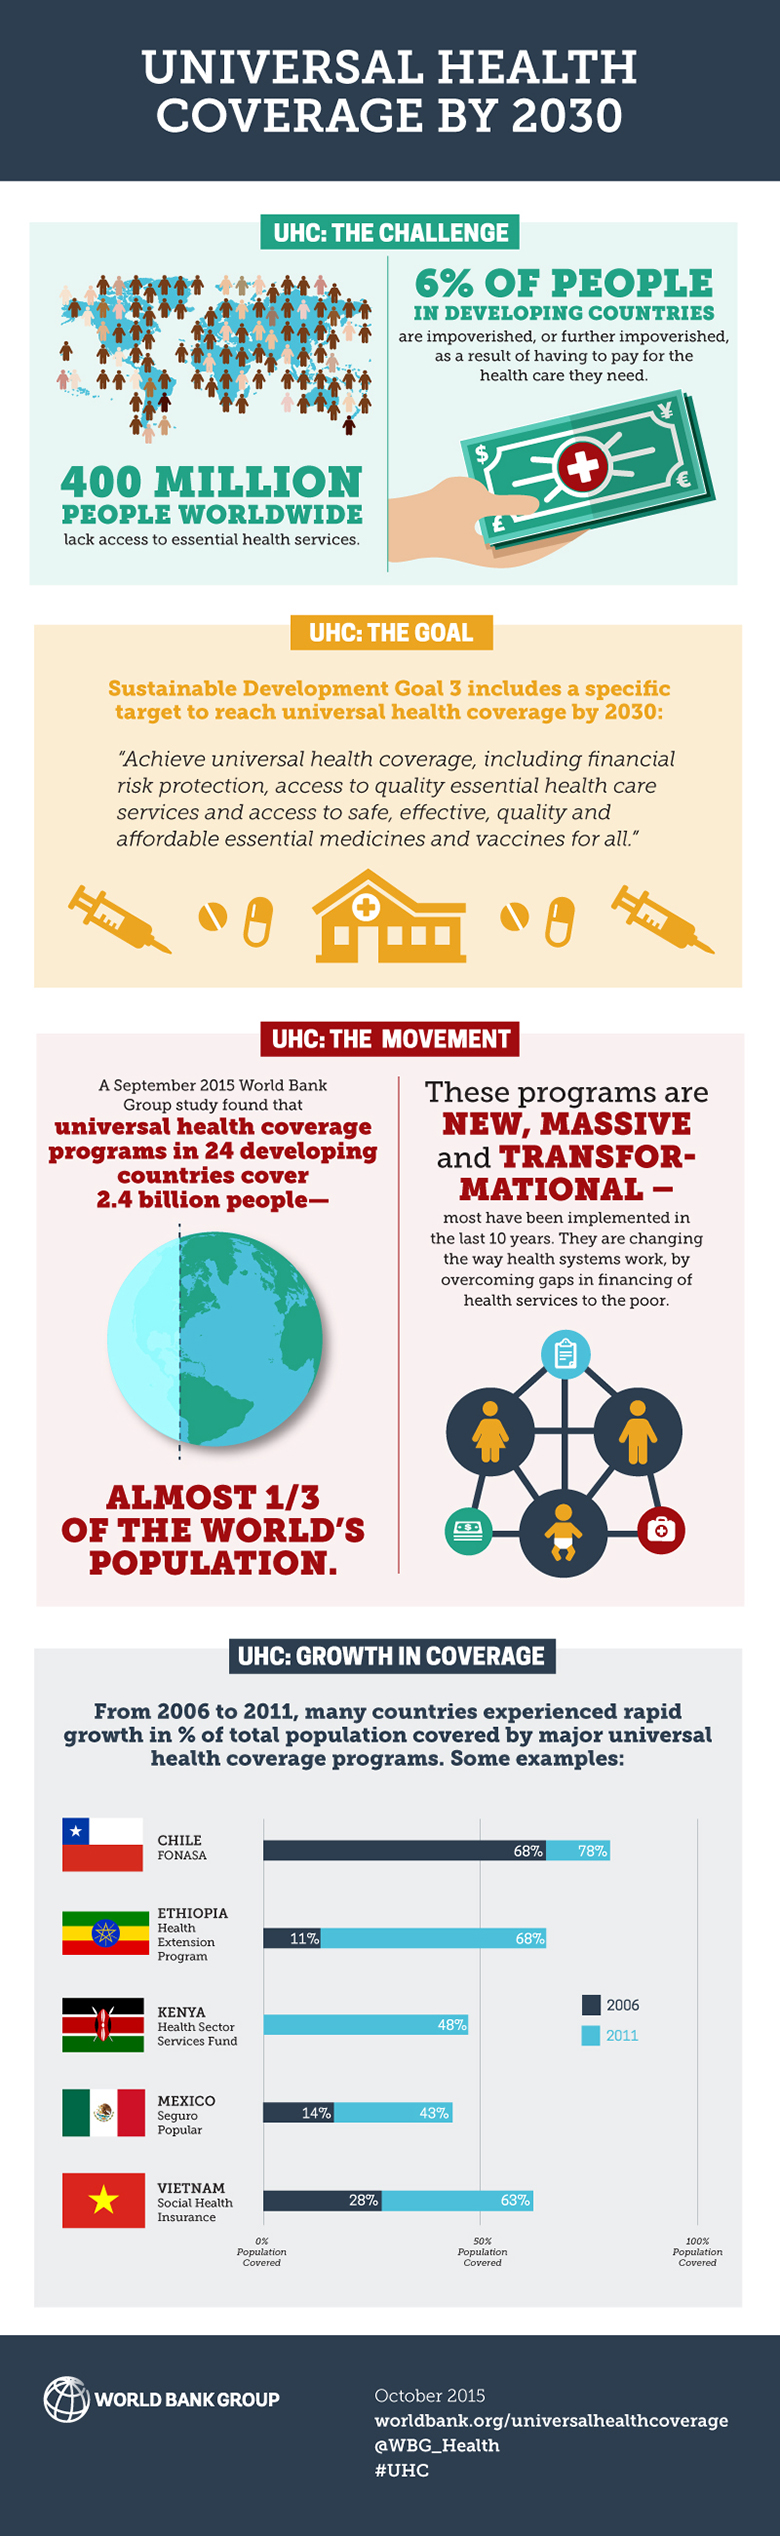 Infographic: Universal Health Coverage by 2030